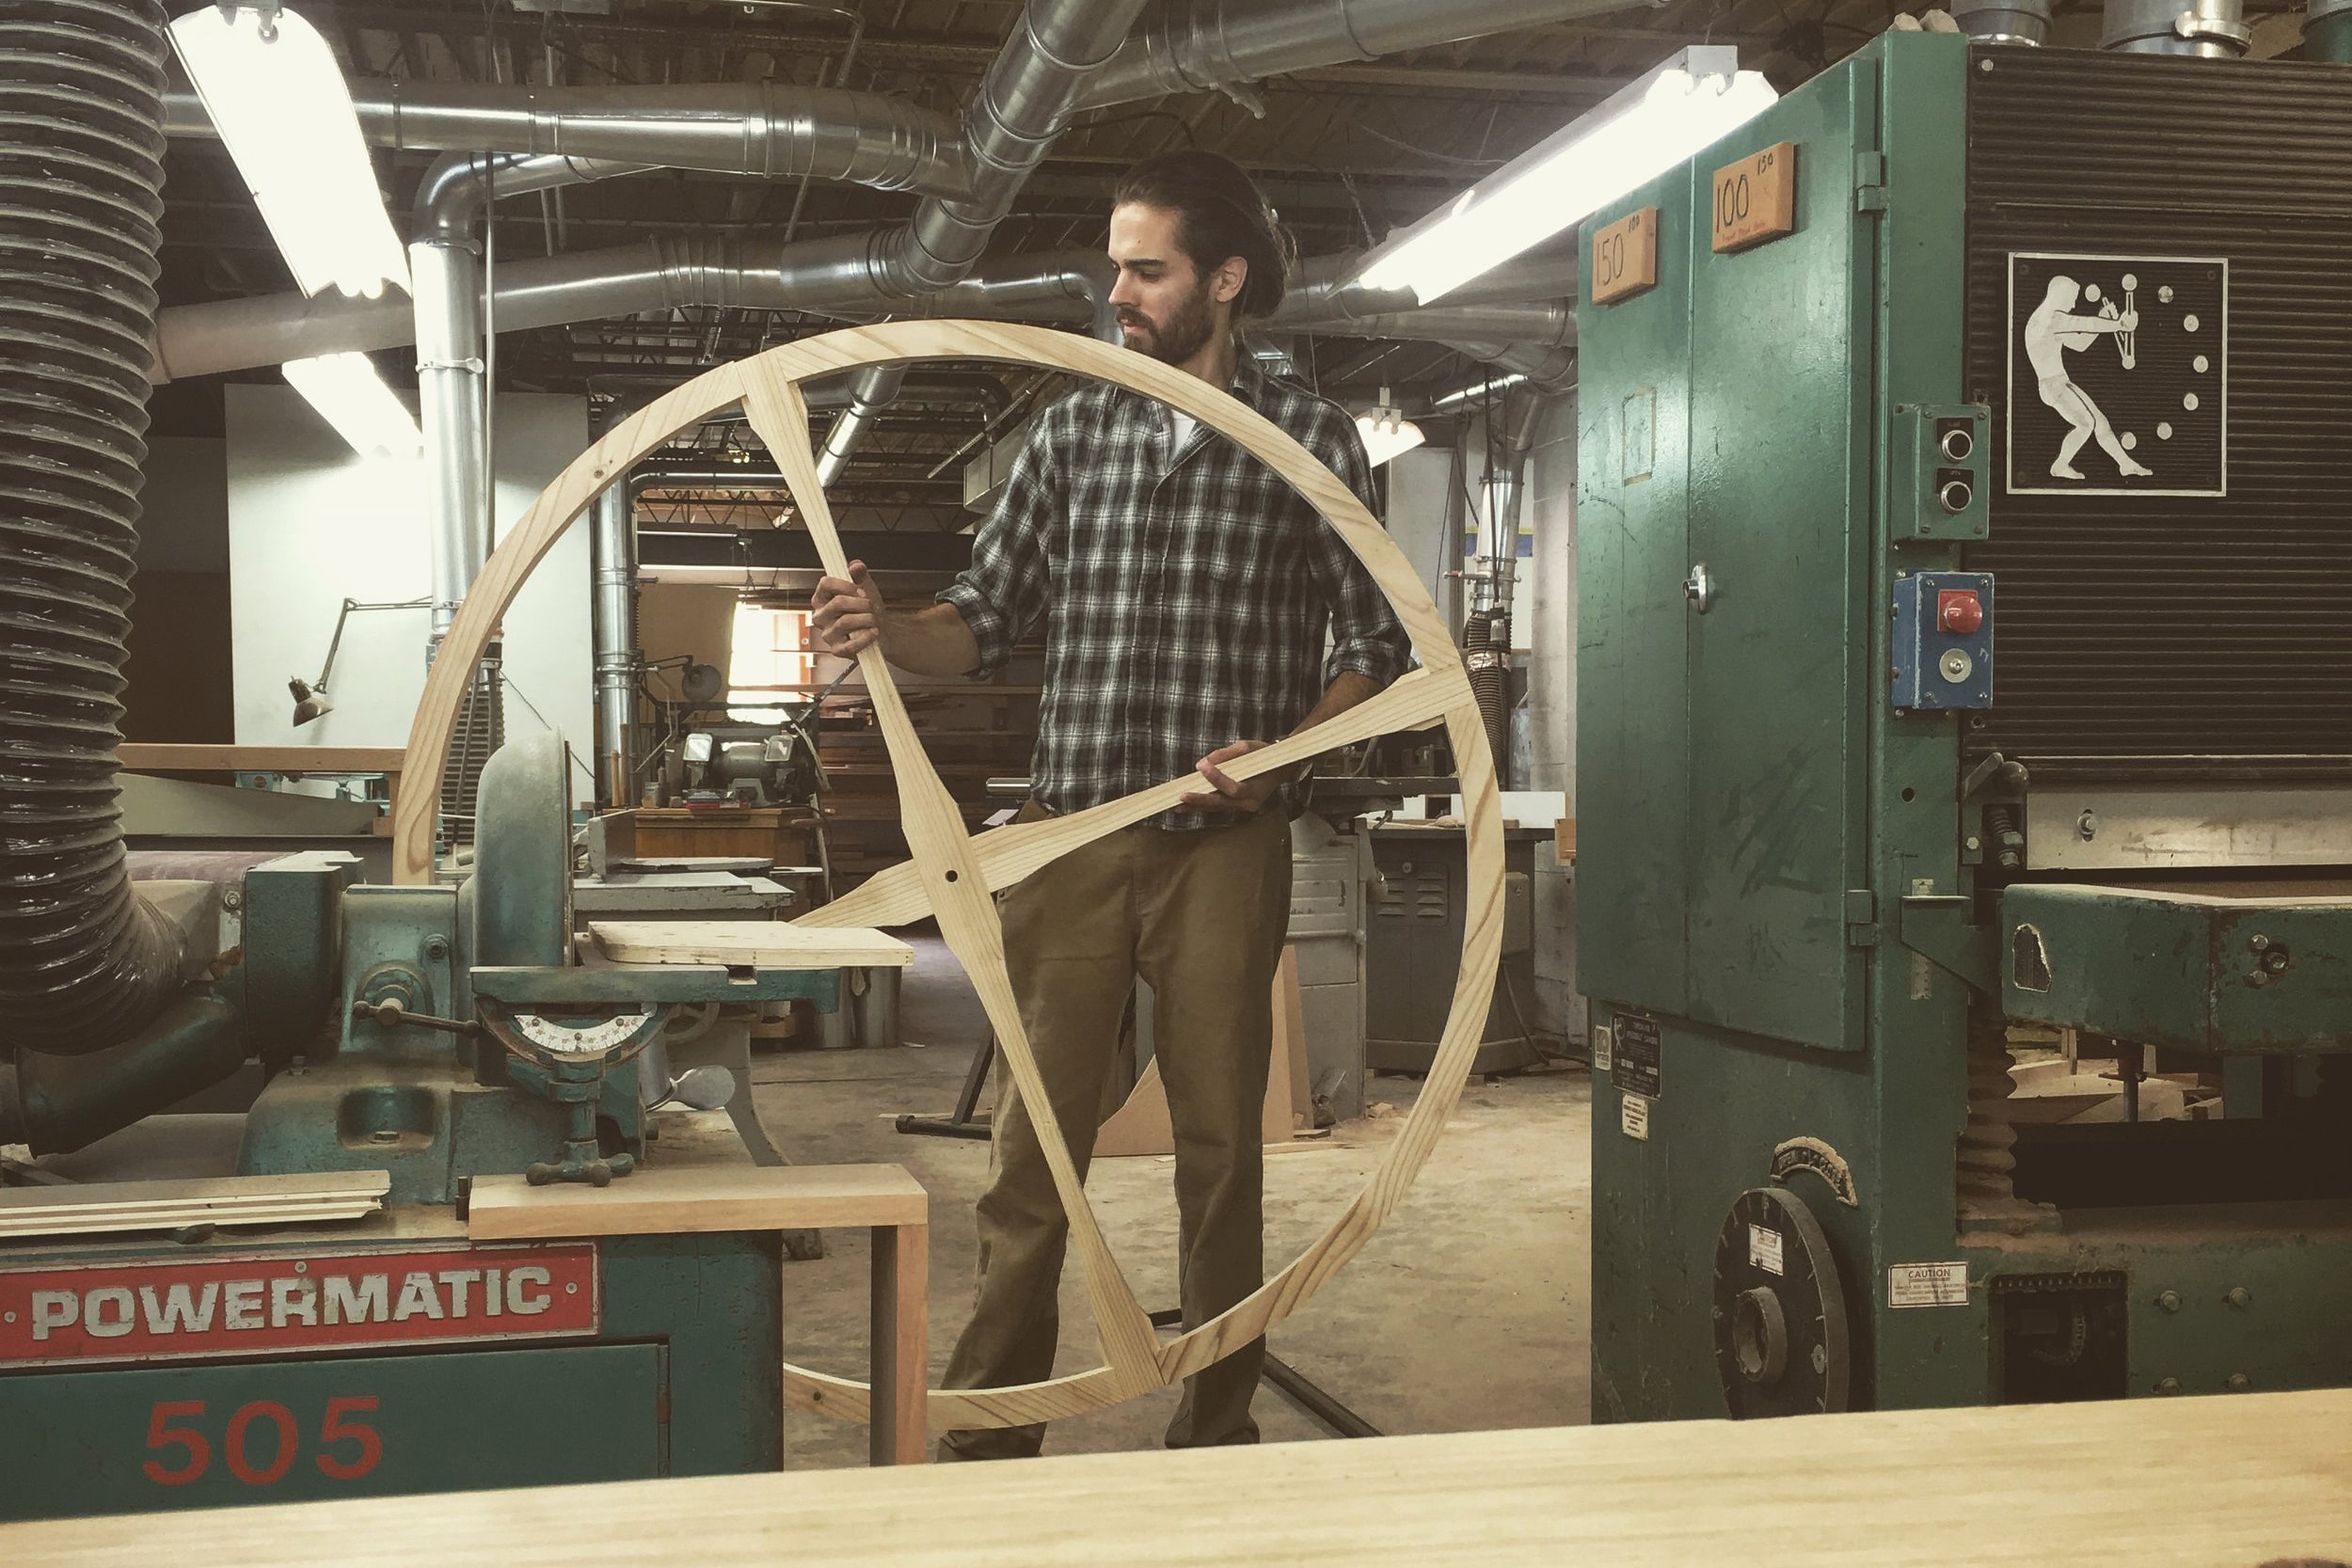 Hale in his workshop in Kalamazoo, Michigan. introducing: rick hale's incredible large-scale wooden clocks Introducing: Rick Hale's Incredible Large-Scale Wooden Clocks powermatic